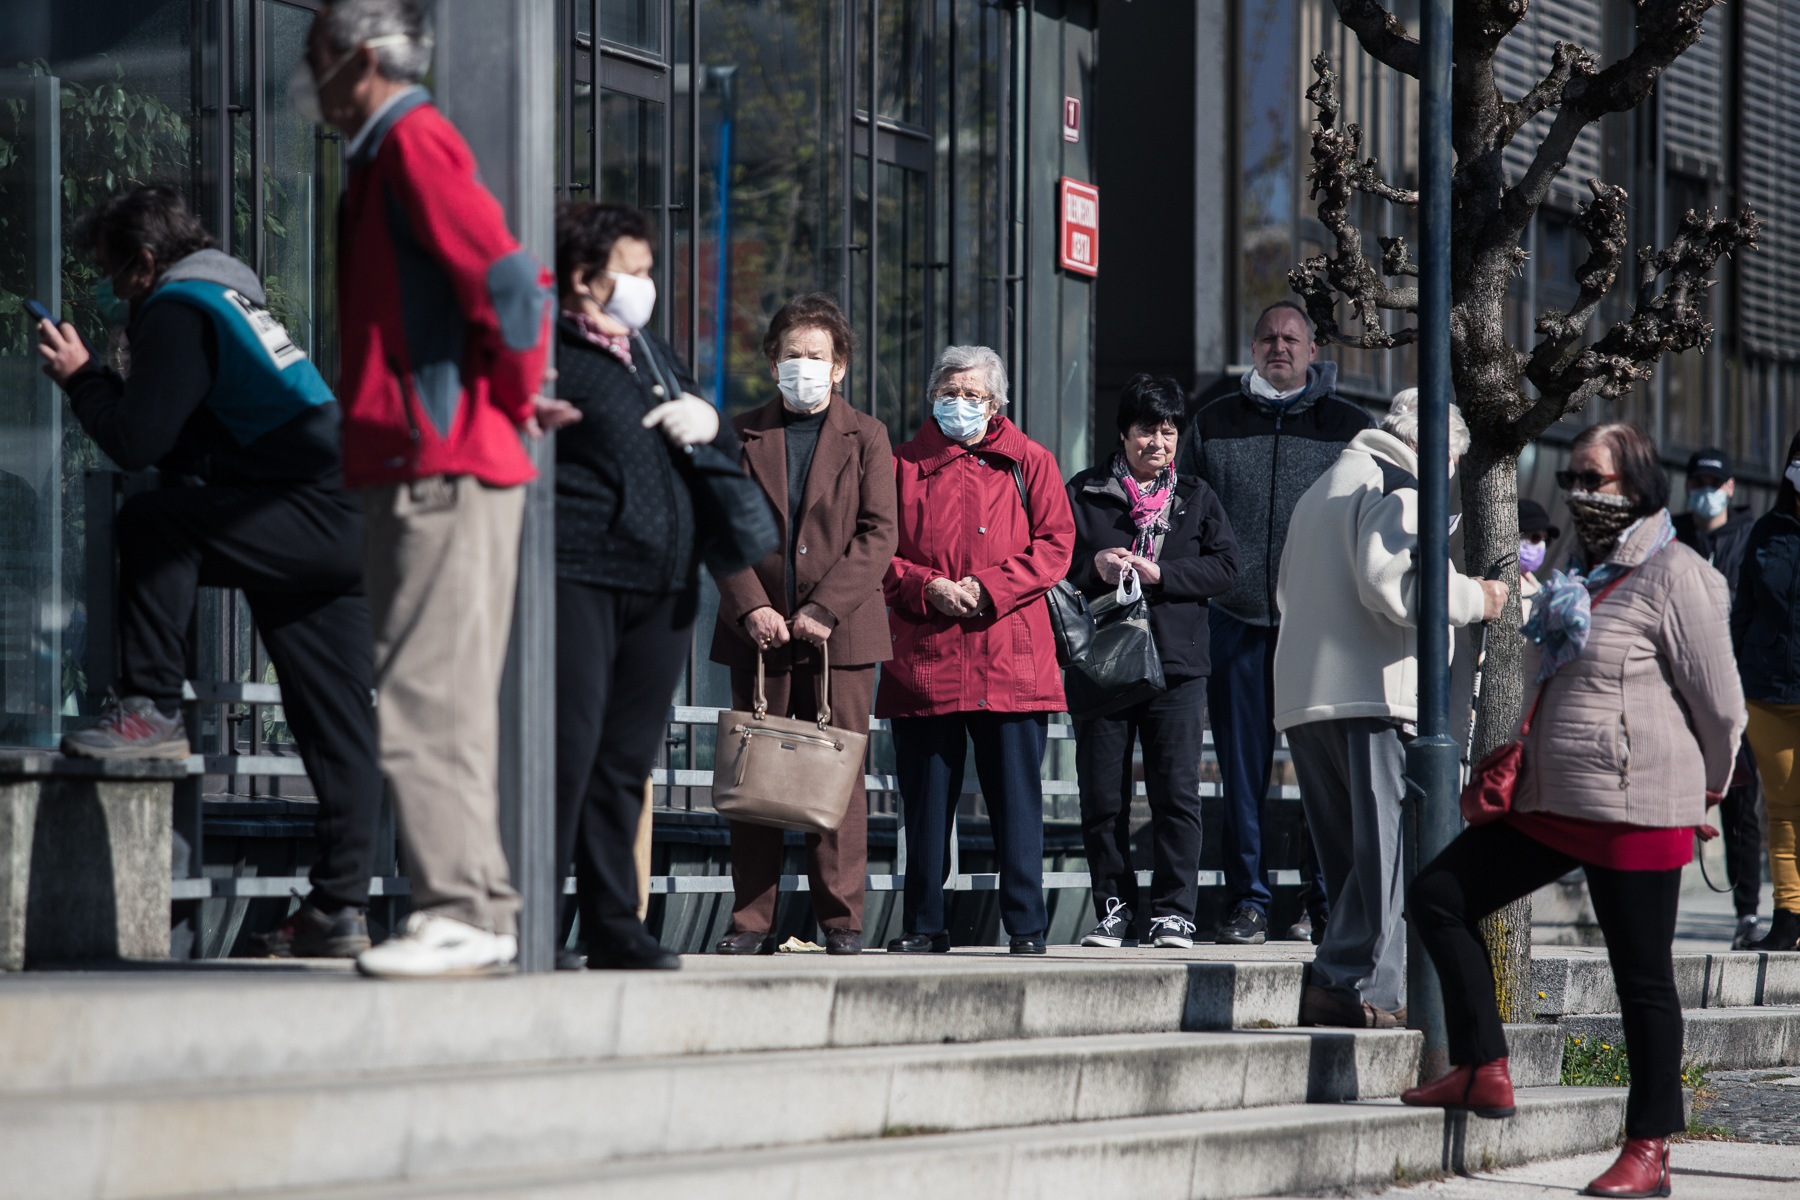 People wait in line to enter a bank in Kranj, Slovenia, due to limitations on how many people can be in the bank at the same time.